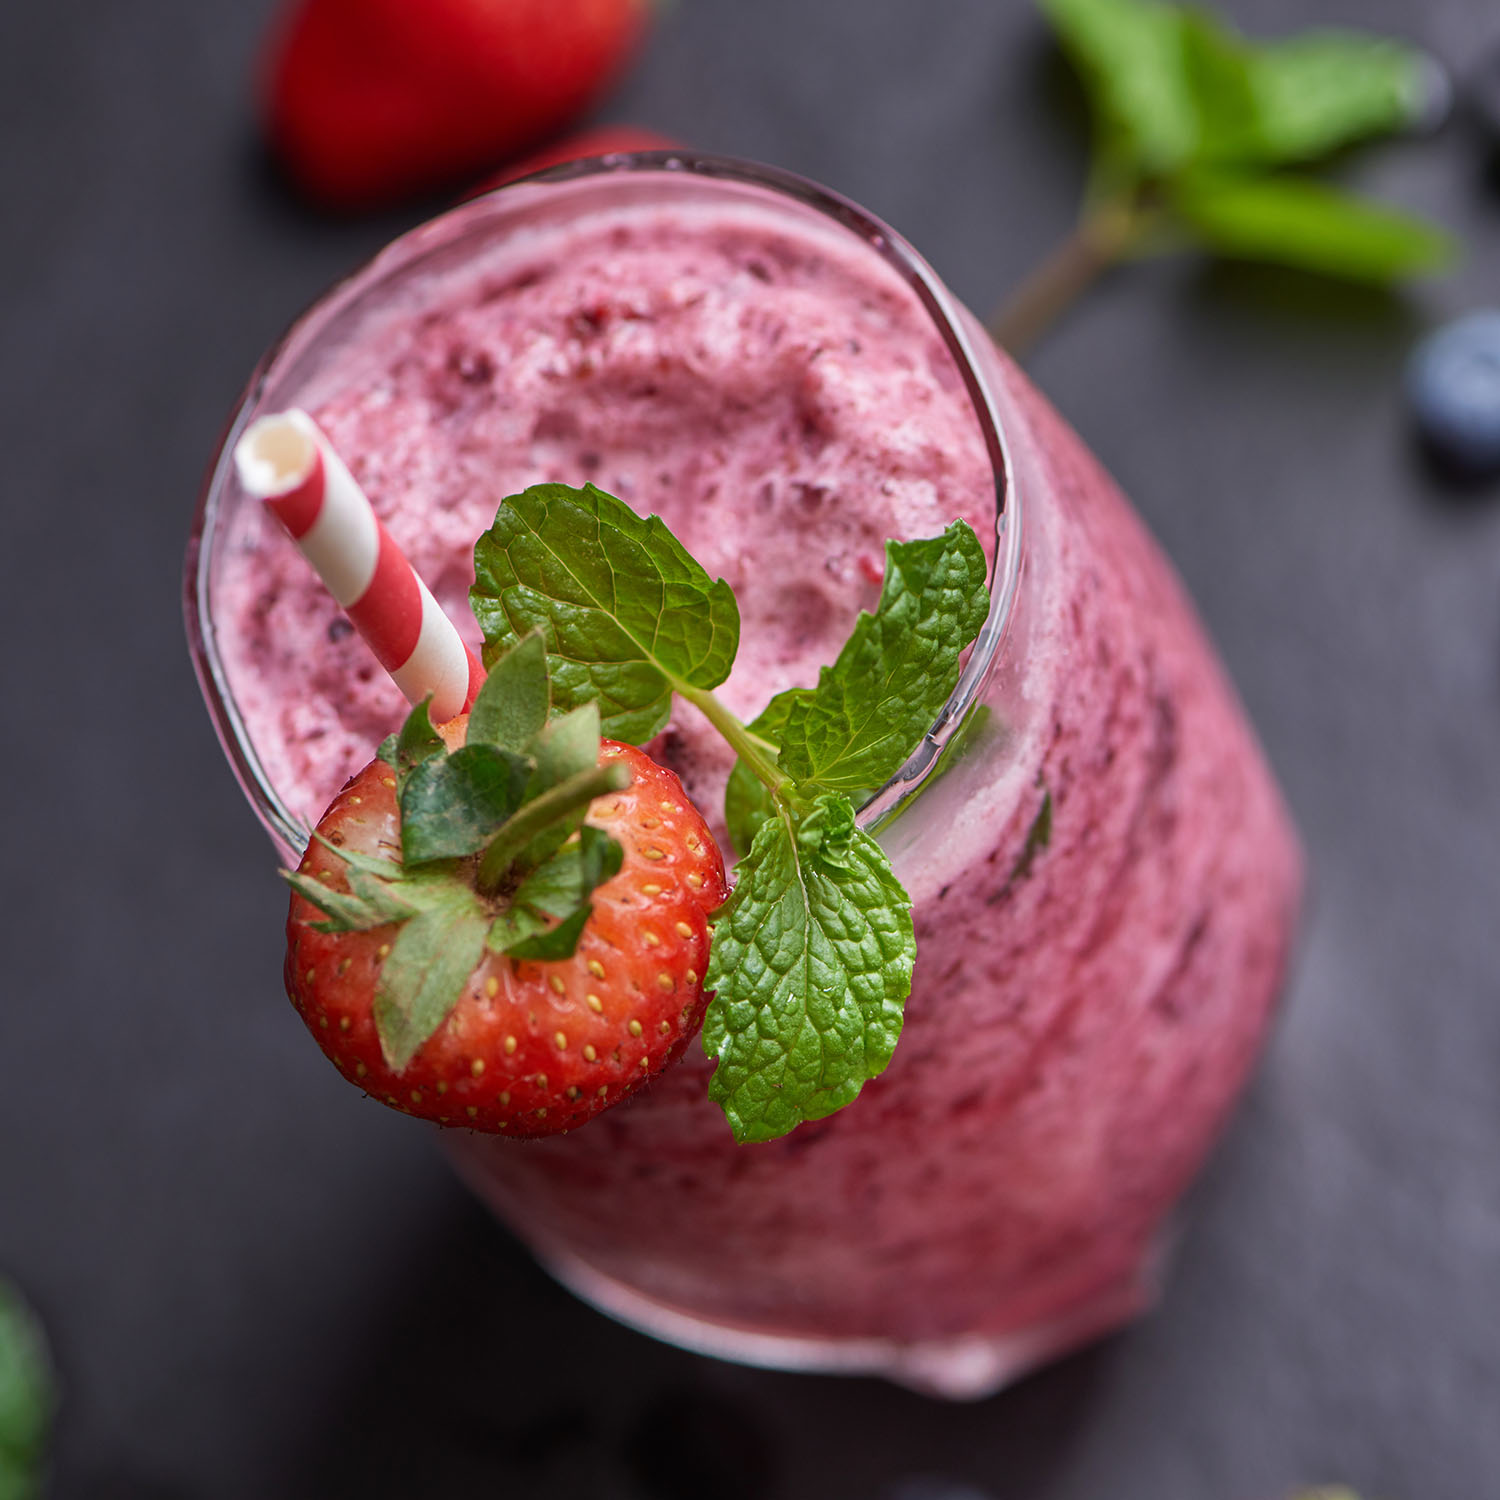 Delicious strawberry, mulberry and blueberry smoothie garnished with fresh berries and mint in glass. soft focus. beautiful appetizer pink raspberries, well being and weight loss concept.